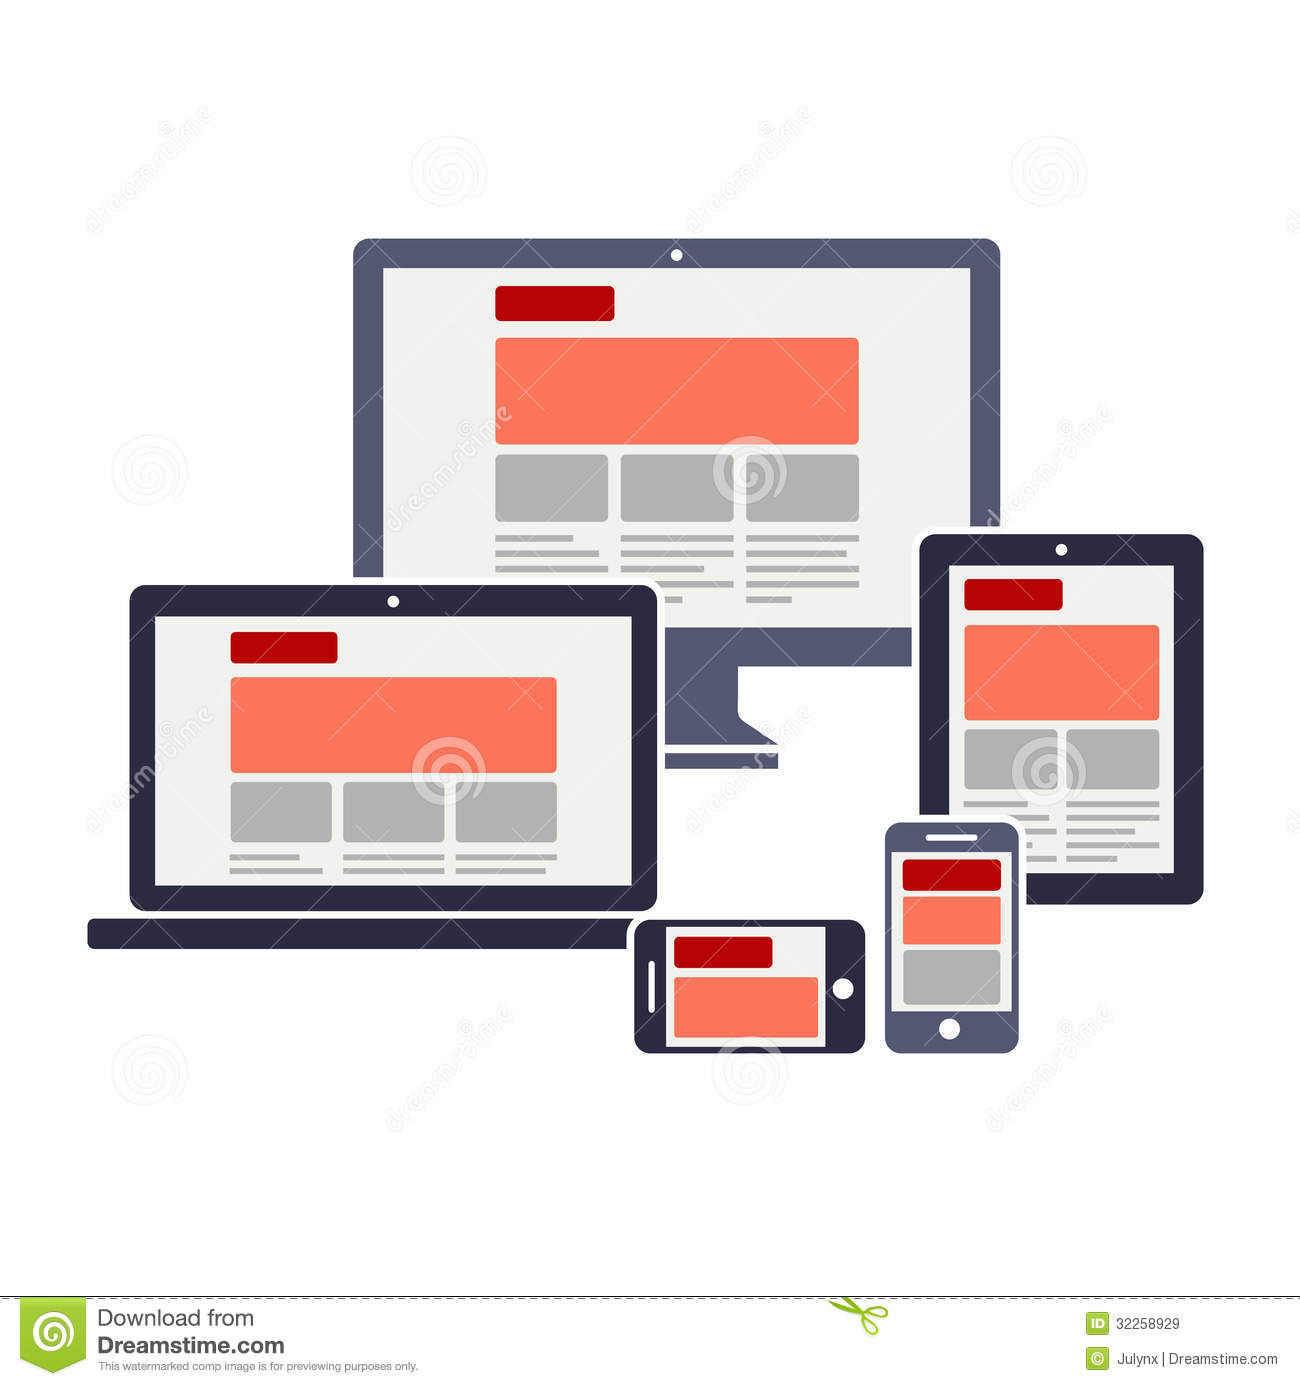 Responsive Web Design Royalty Free Stock Images - Image: 32258929: www.dreamstime.com/royalty-free-stock-images-responsive-web-design...